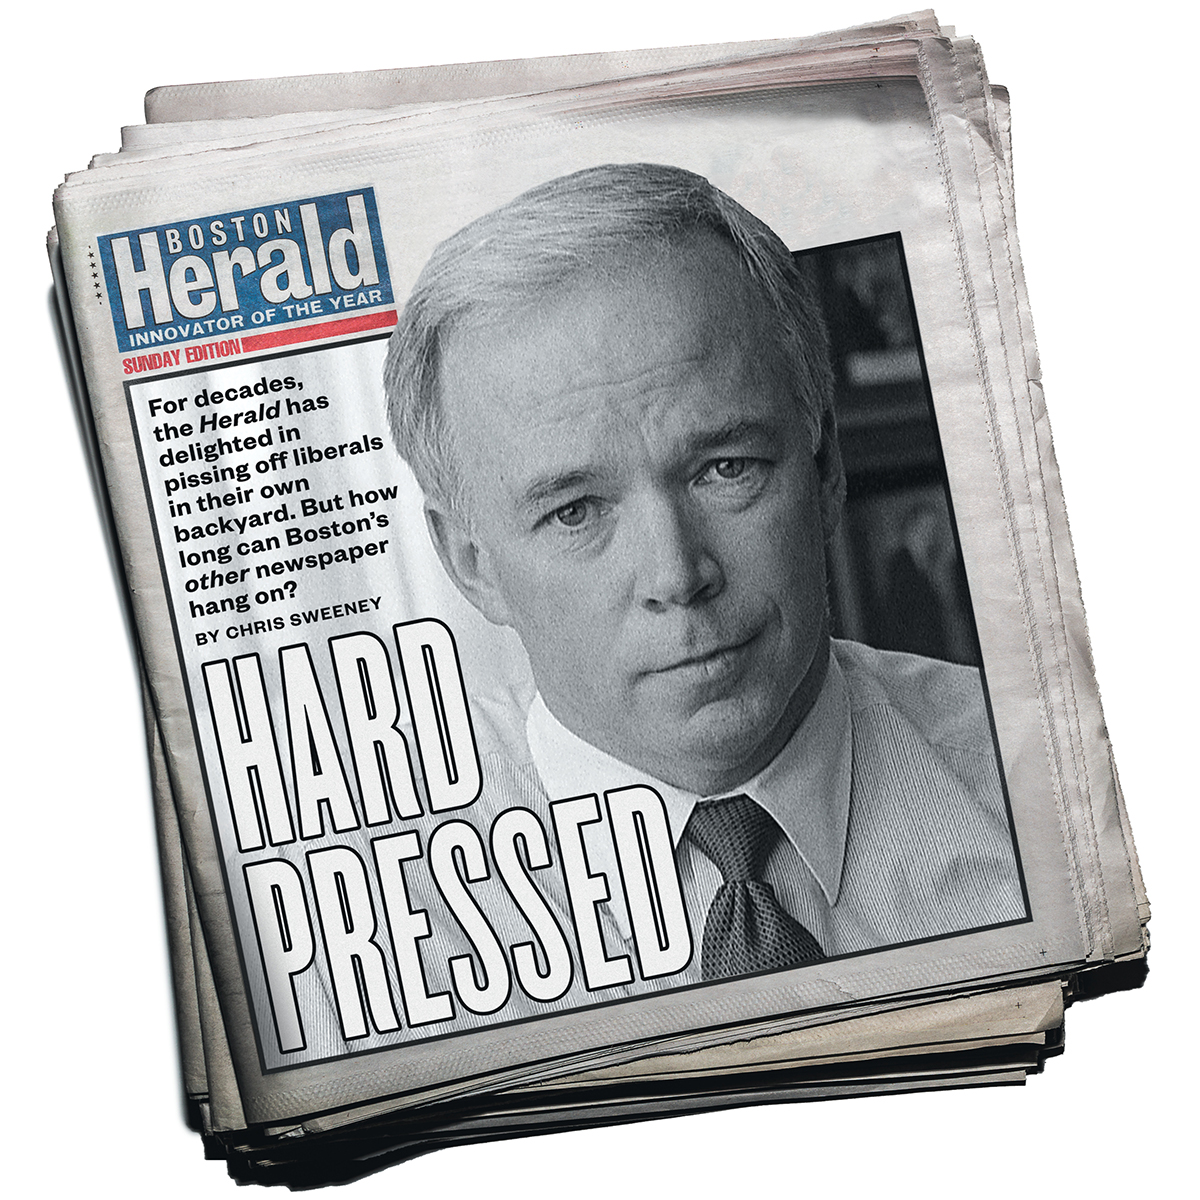 boston herald hard pressed